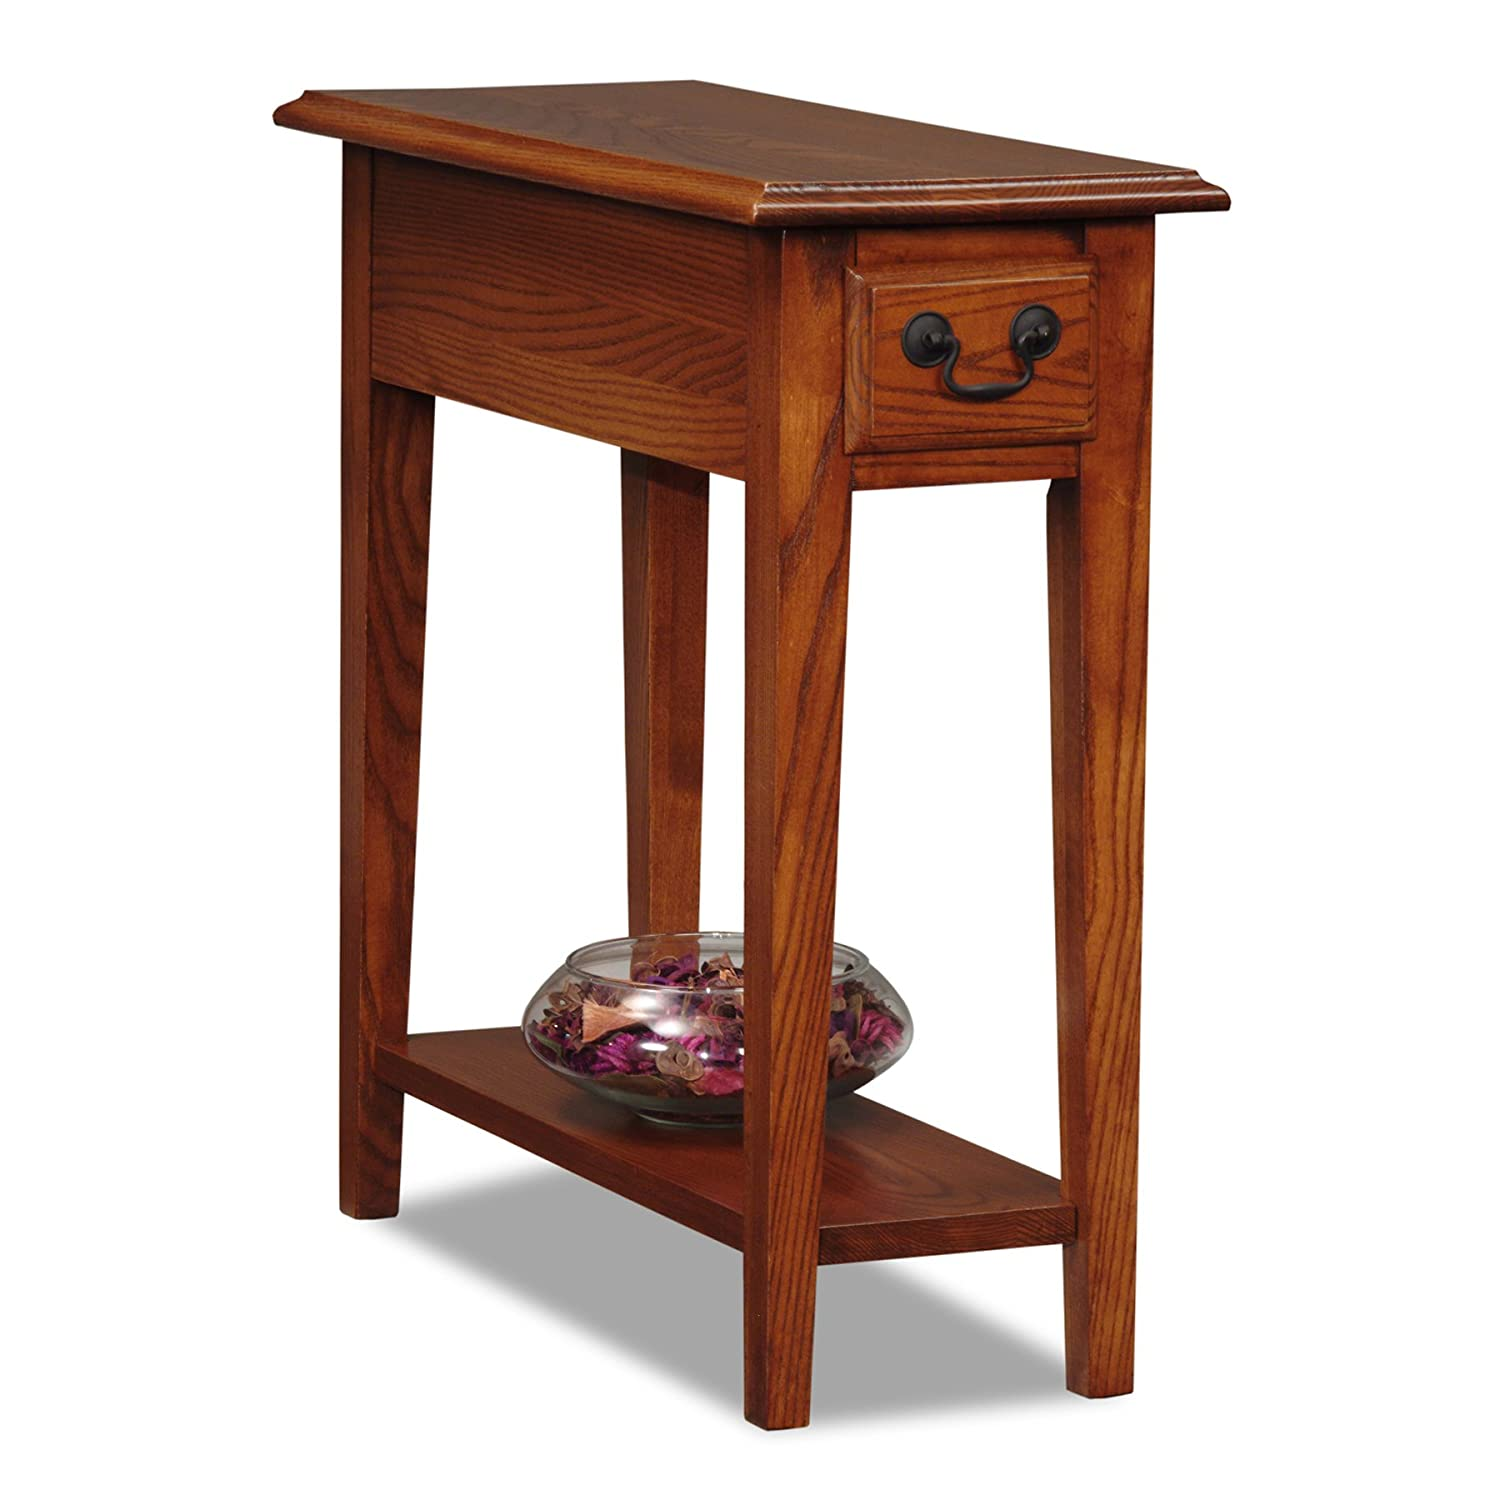 Chair side end table ash wood oak finish narrow style